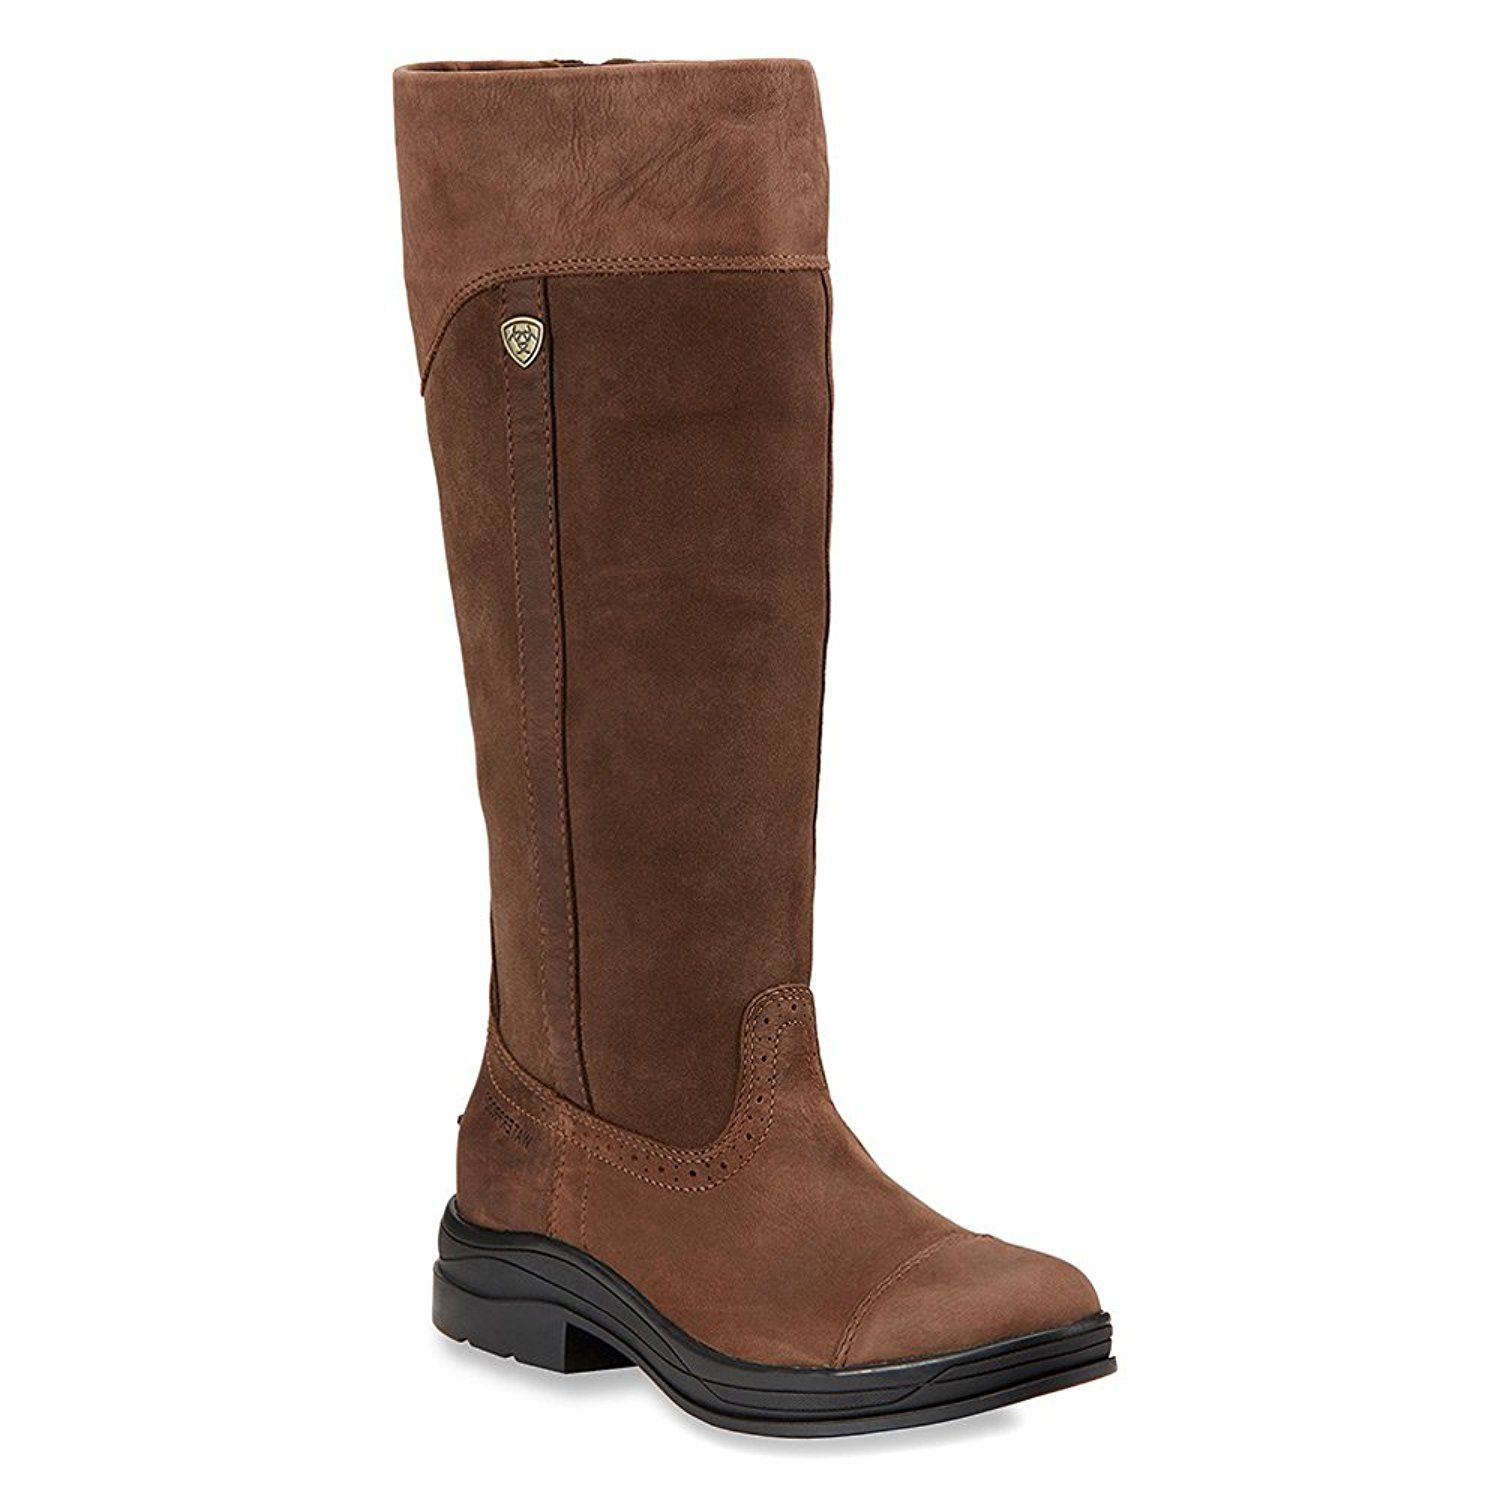 Ariat Women S Ennerdale H2o English Country Boot Hurry Check Out This Great Shoes Rain Boots Womens Rain Boots Boots Womens Mid Calf Boots